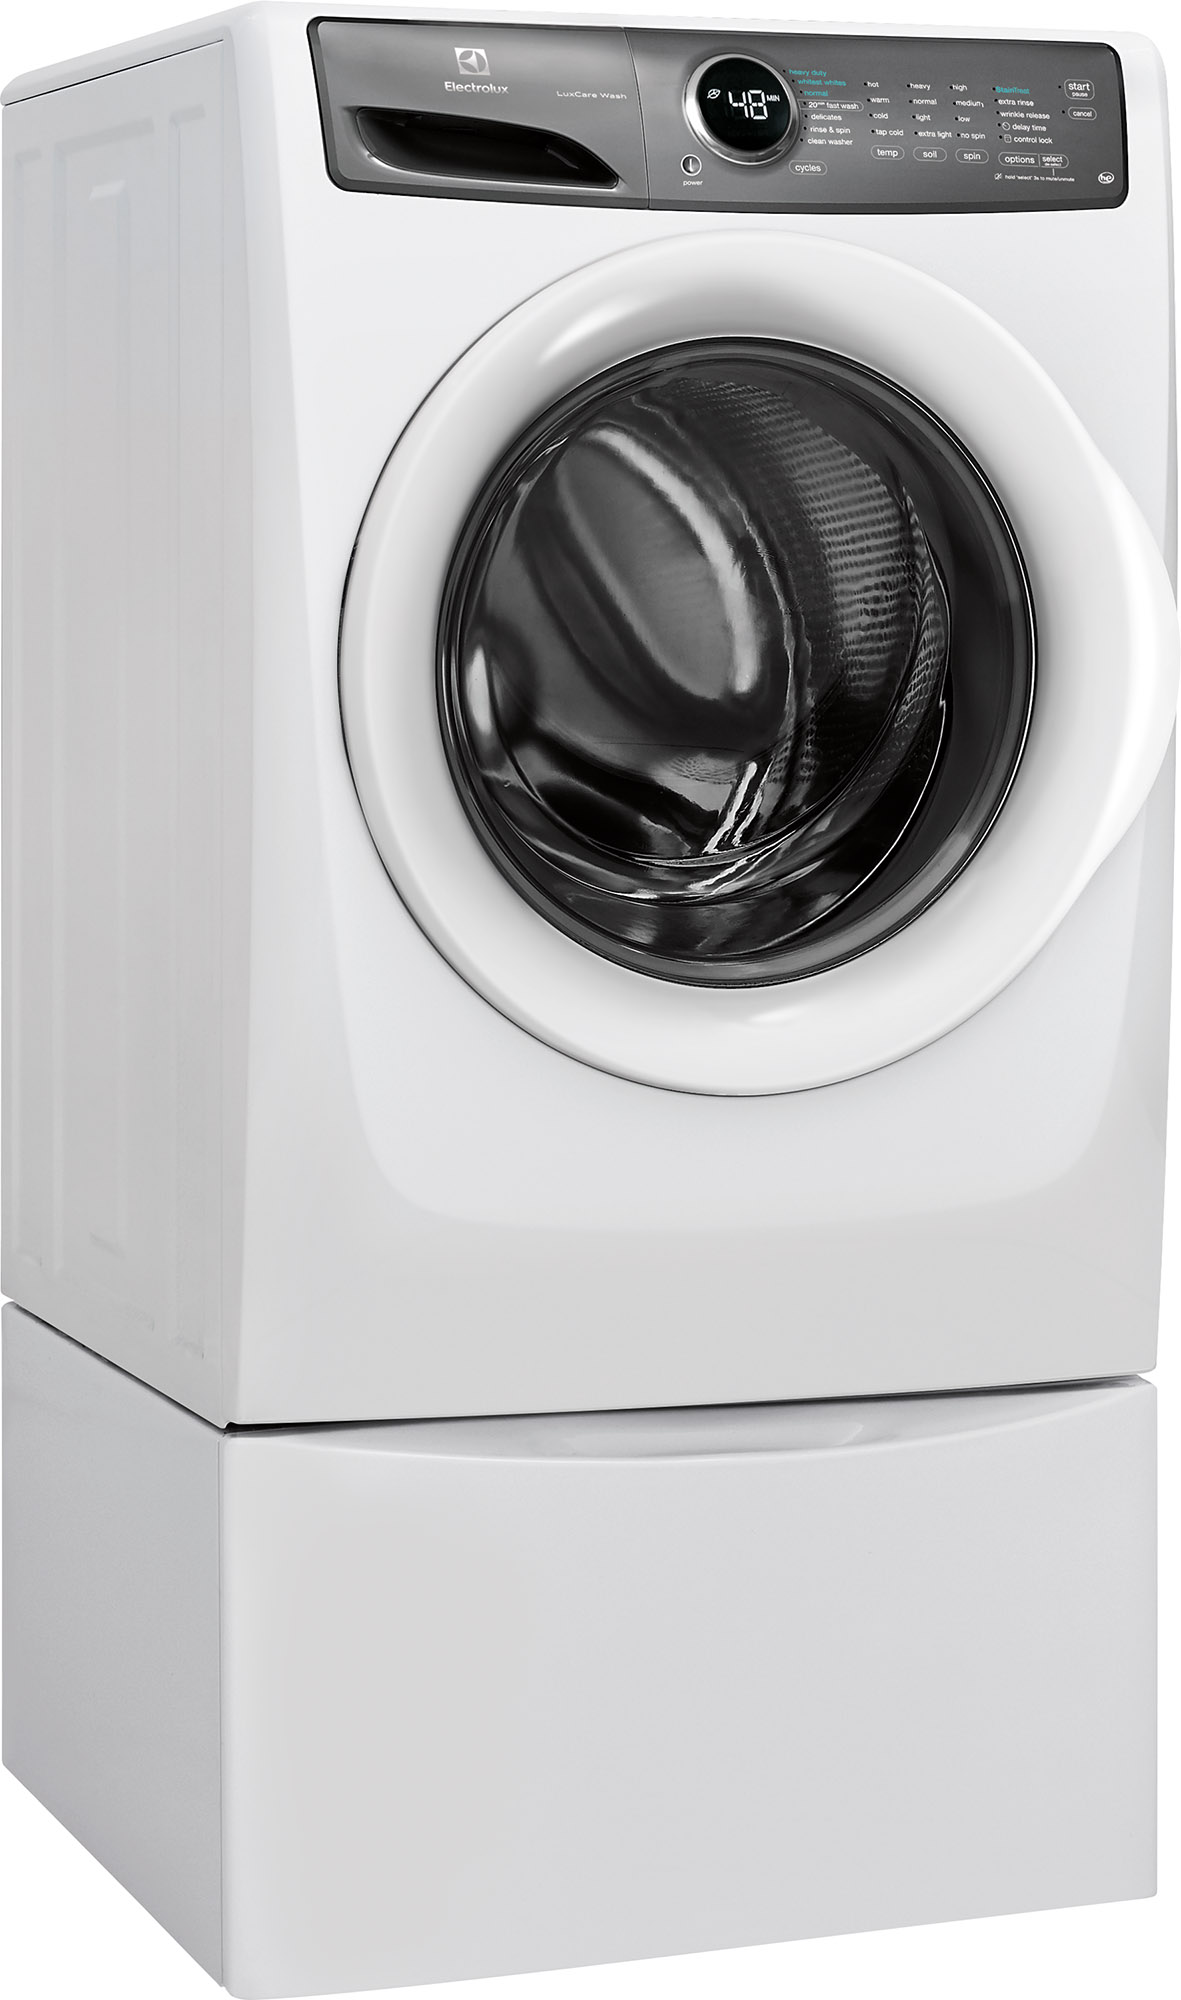 Electrolux Front Load Washer Island White Eflw427uiw Home Washing Machine Wiring Diagram